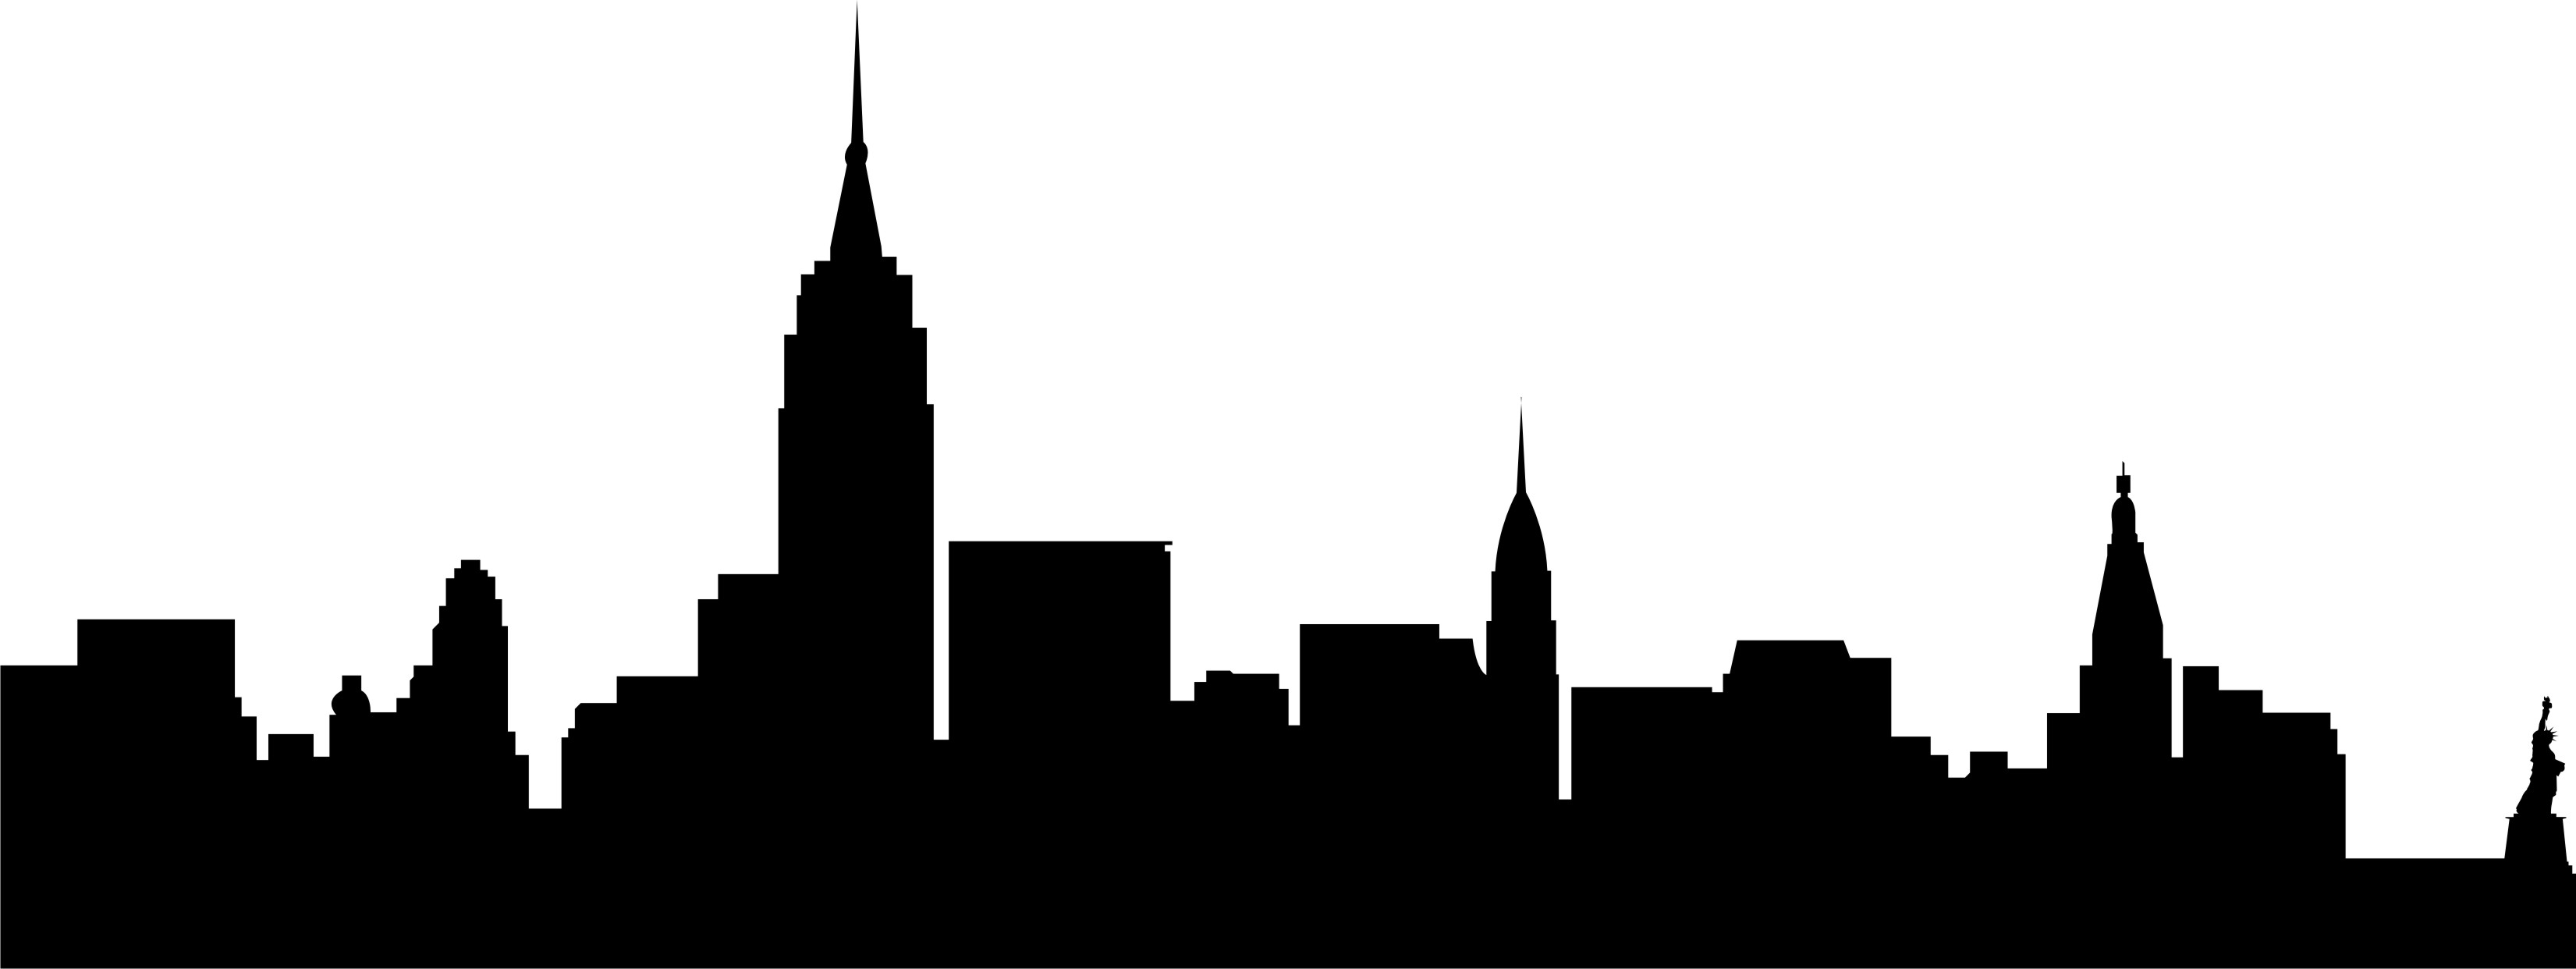 Silhouette at getdrawings com. Buildings clipart city building